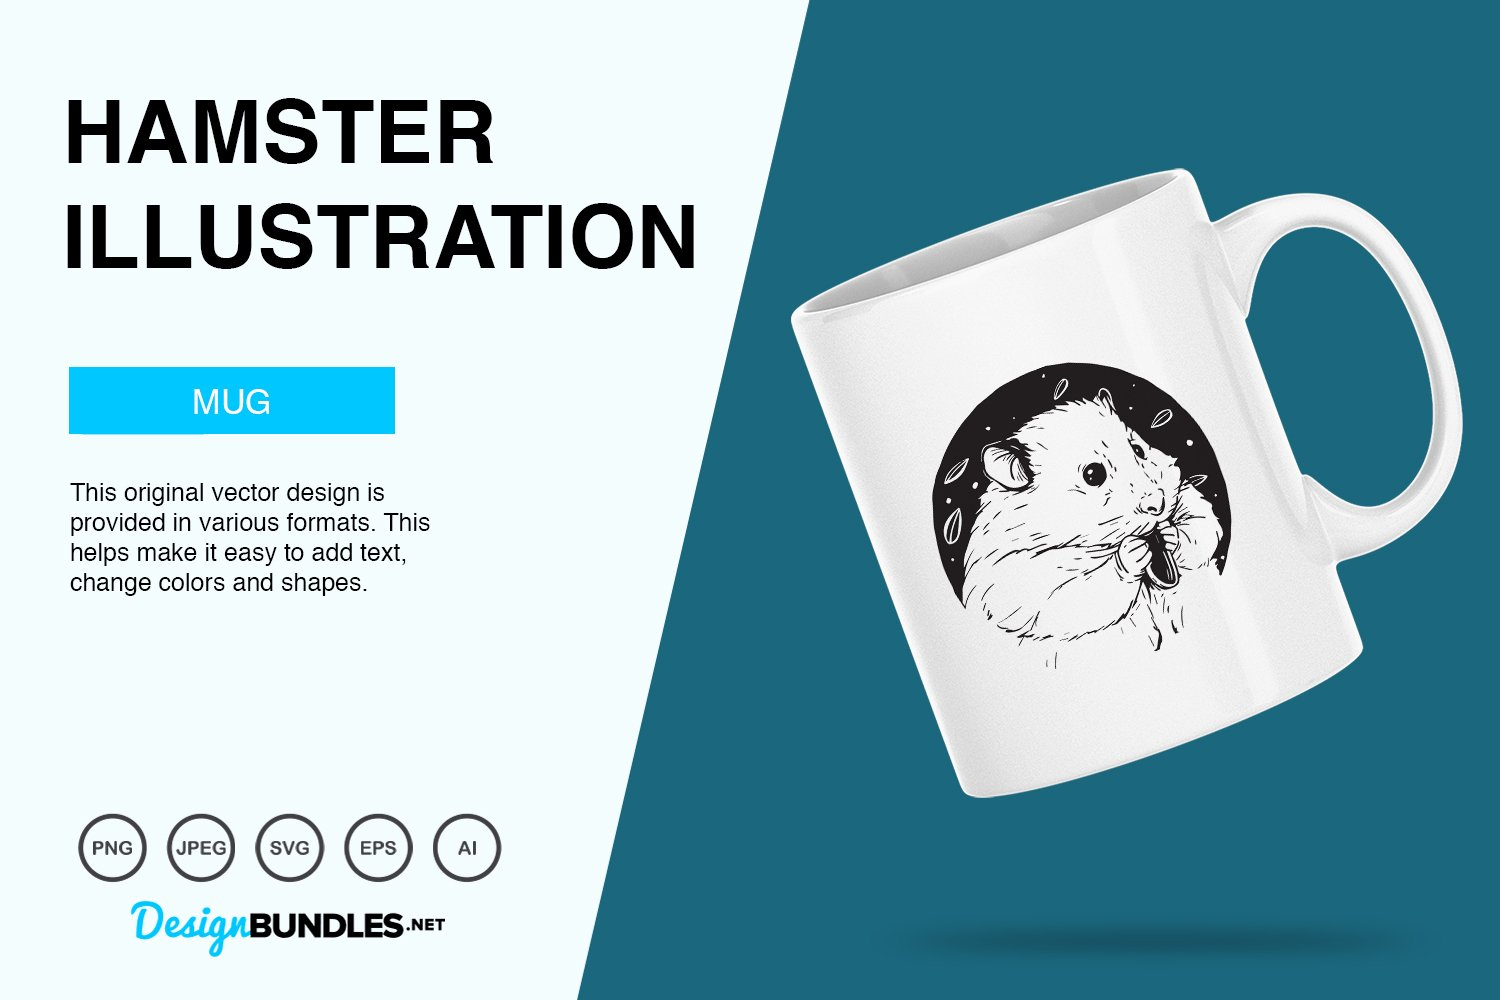 Hamster Vector Illustration example image 3